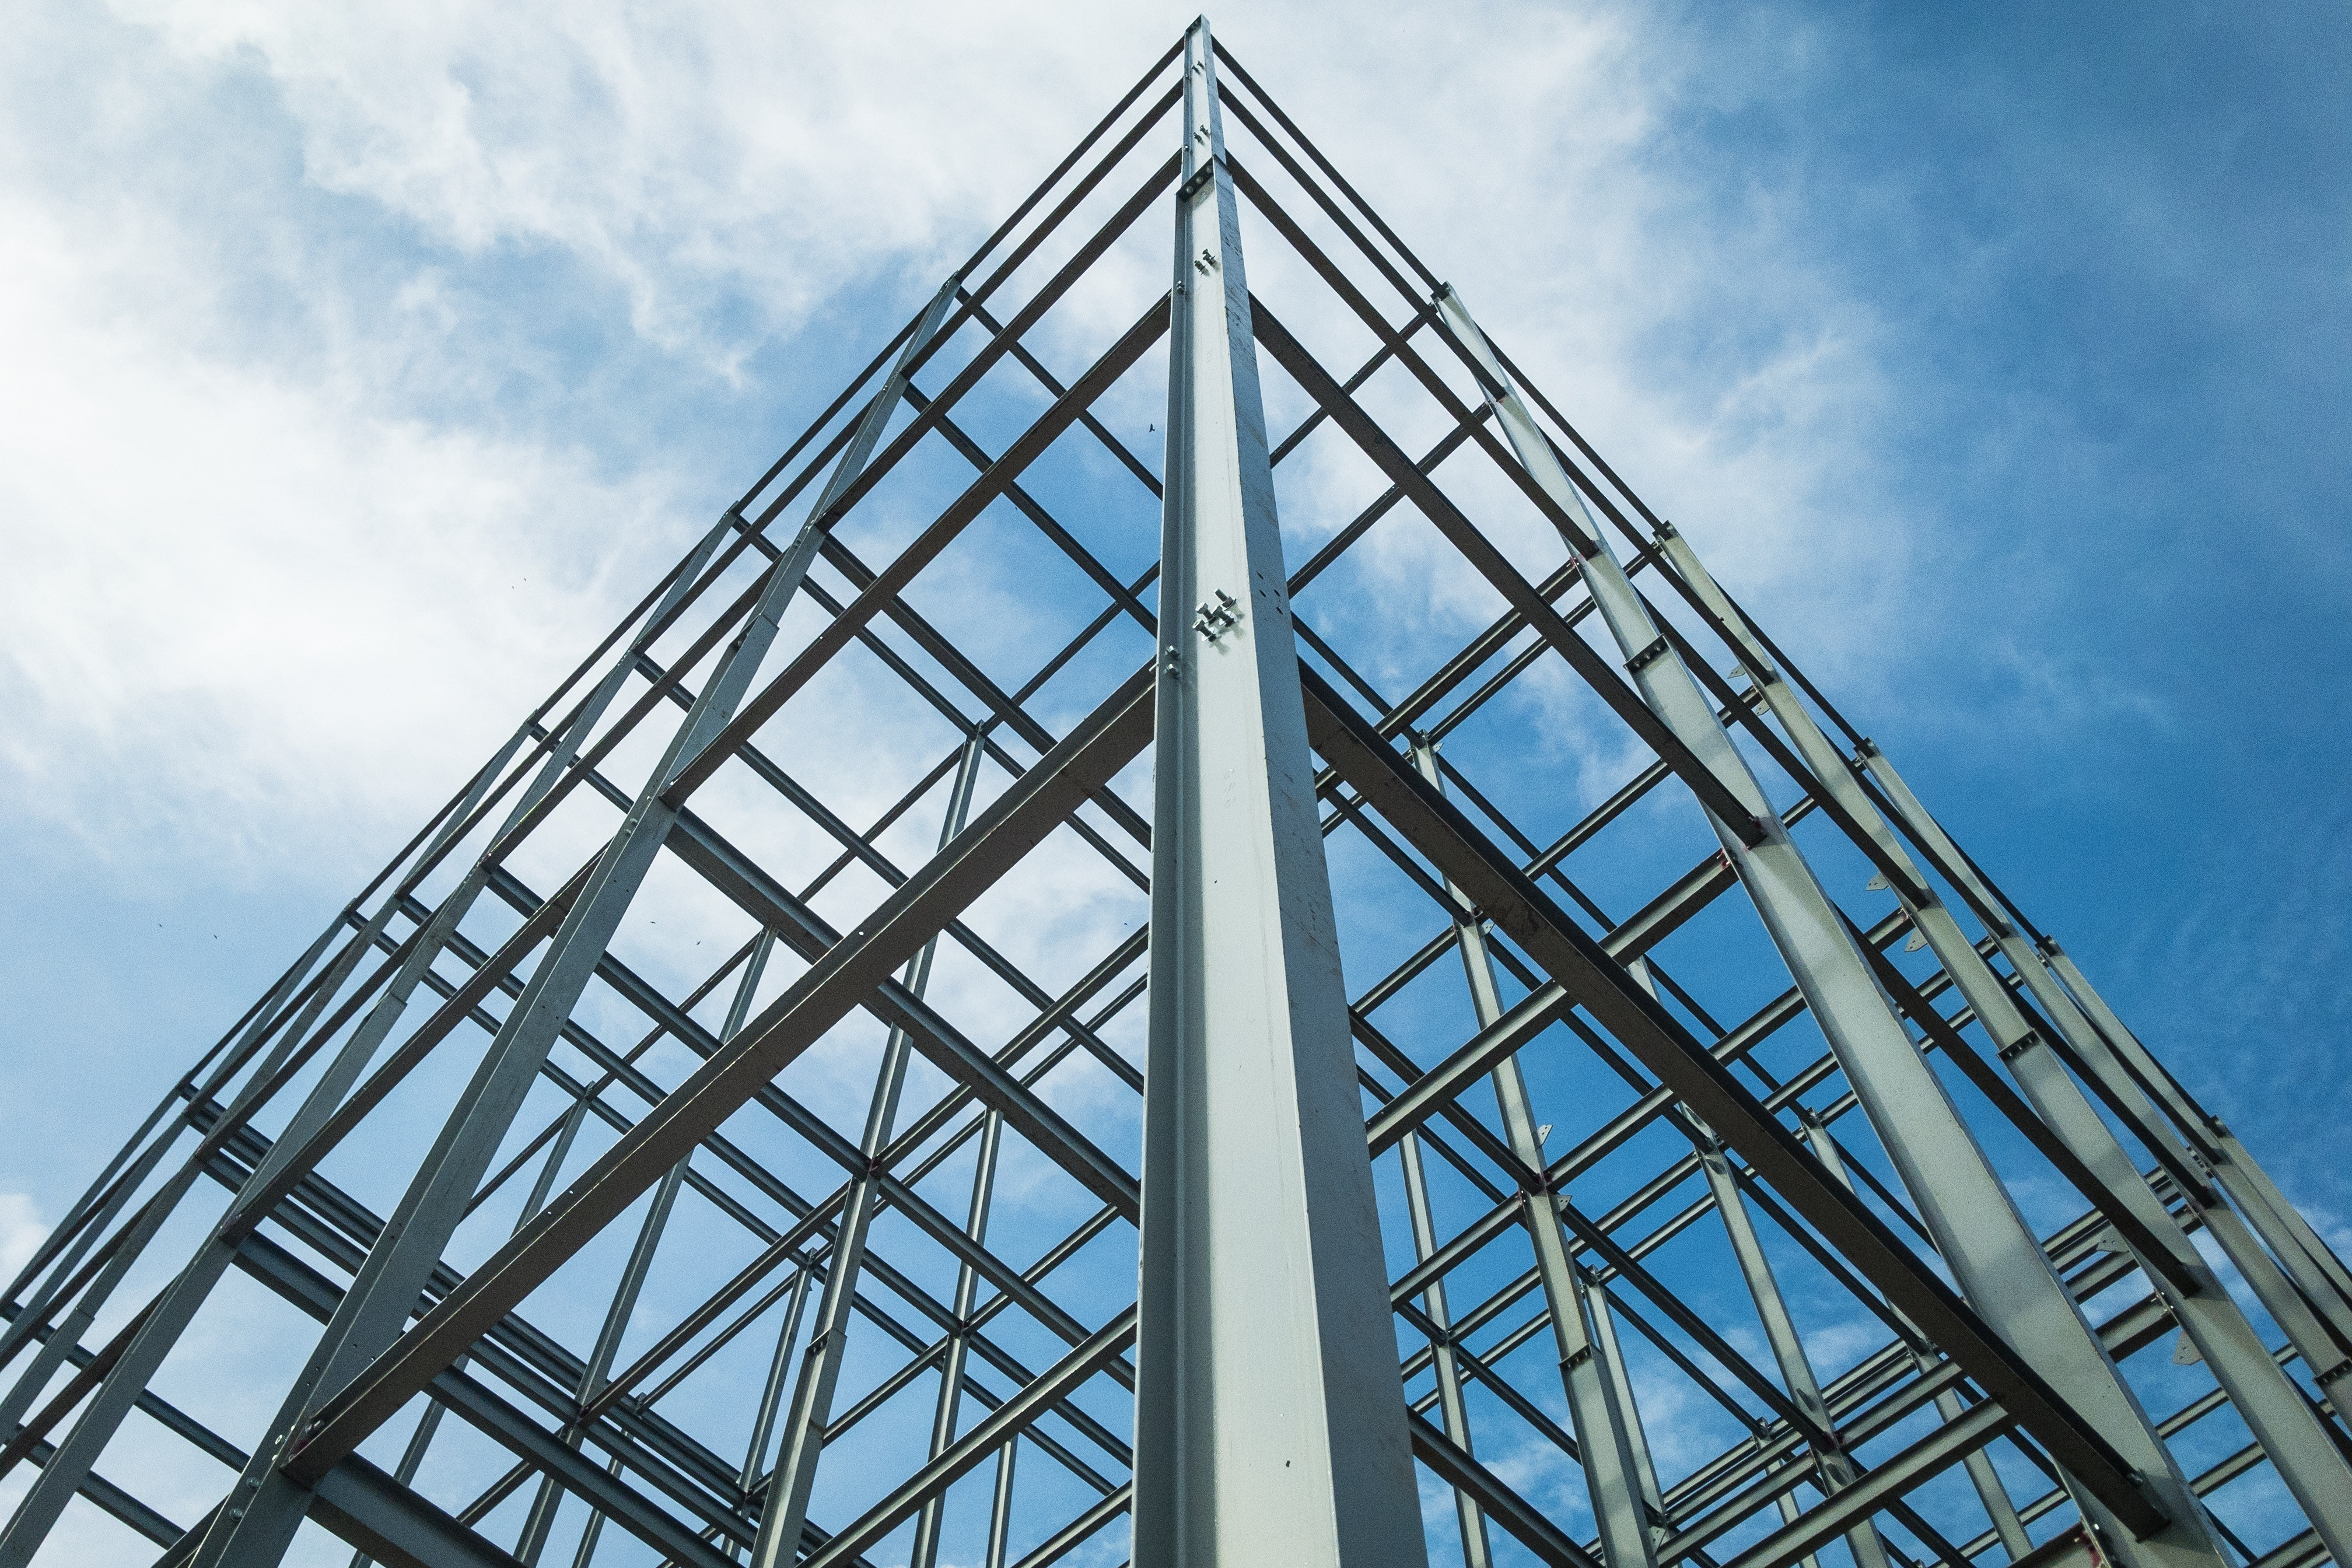 Steelwork and Architectural Metalwork